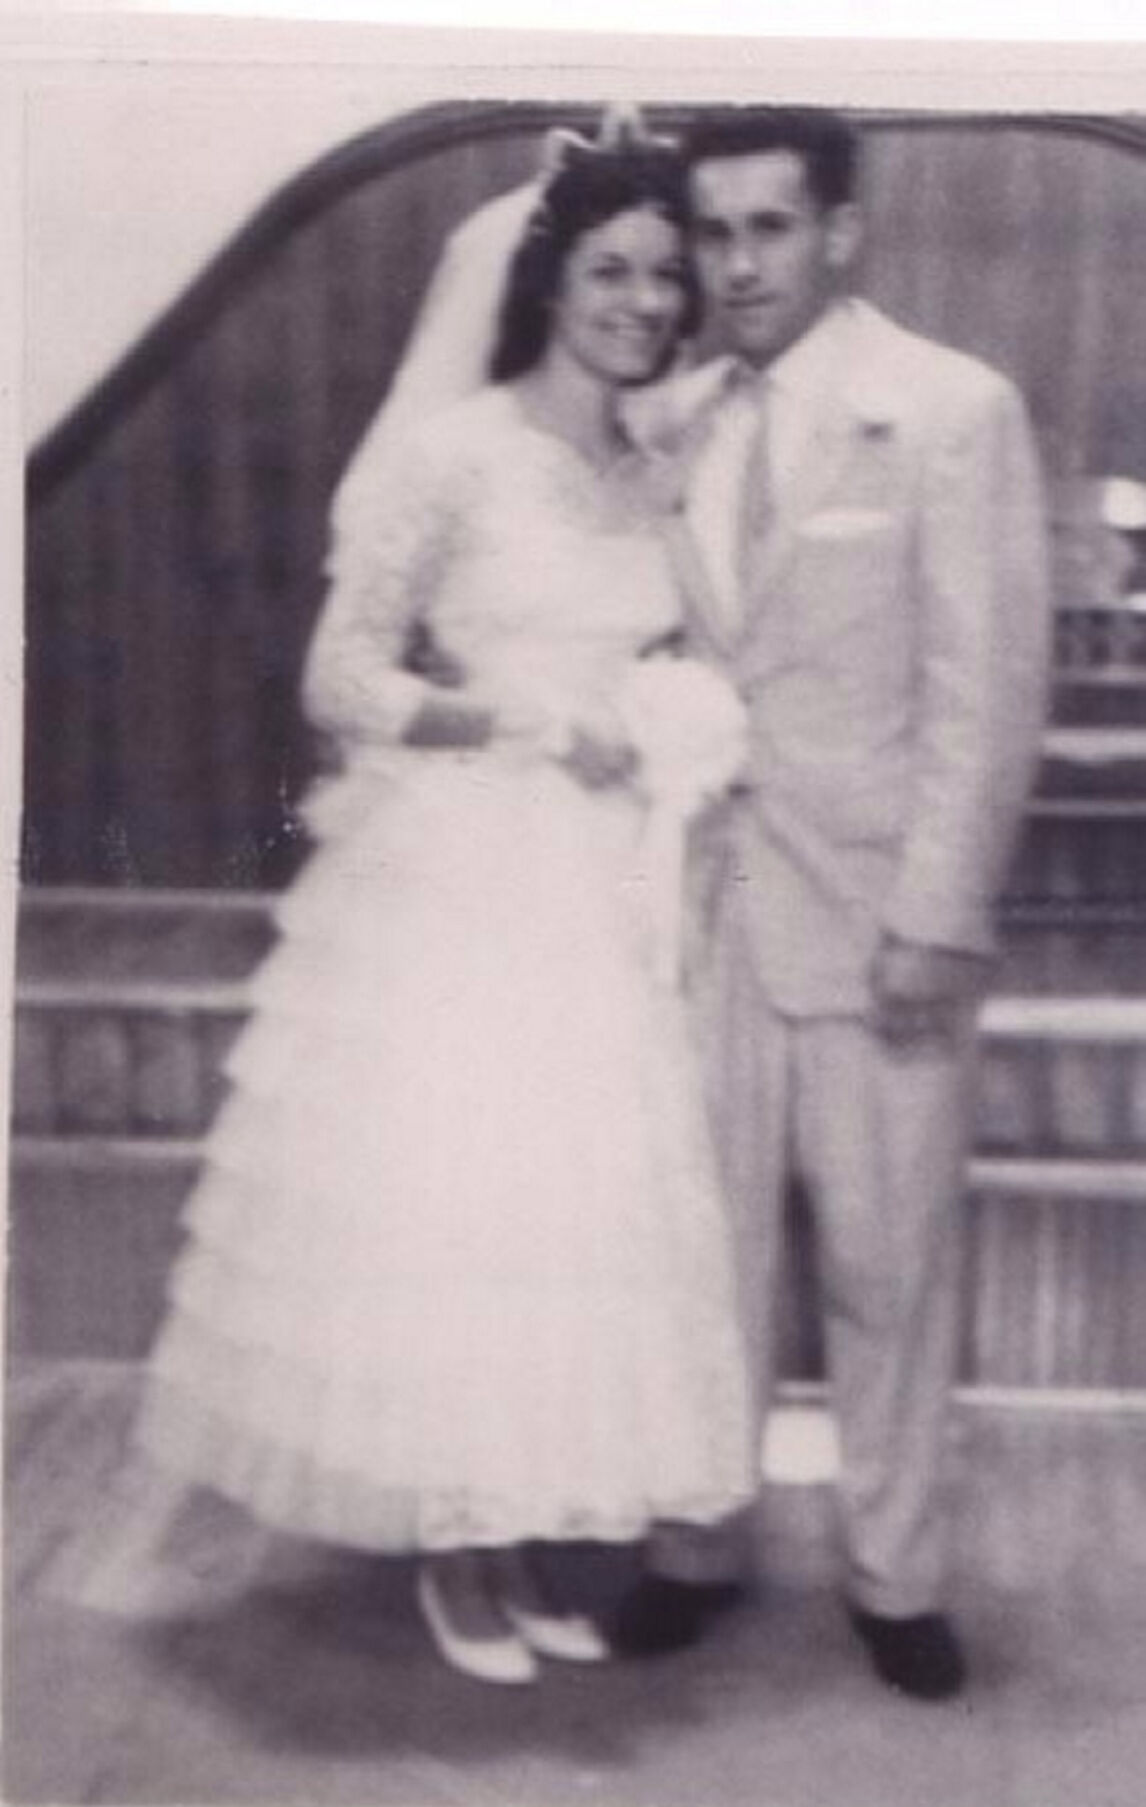 Mr. and Mrs. Terry Robinson, 60 years